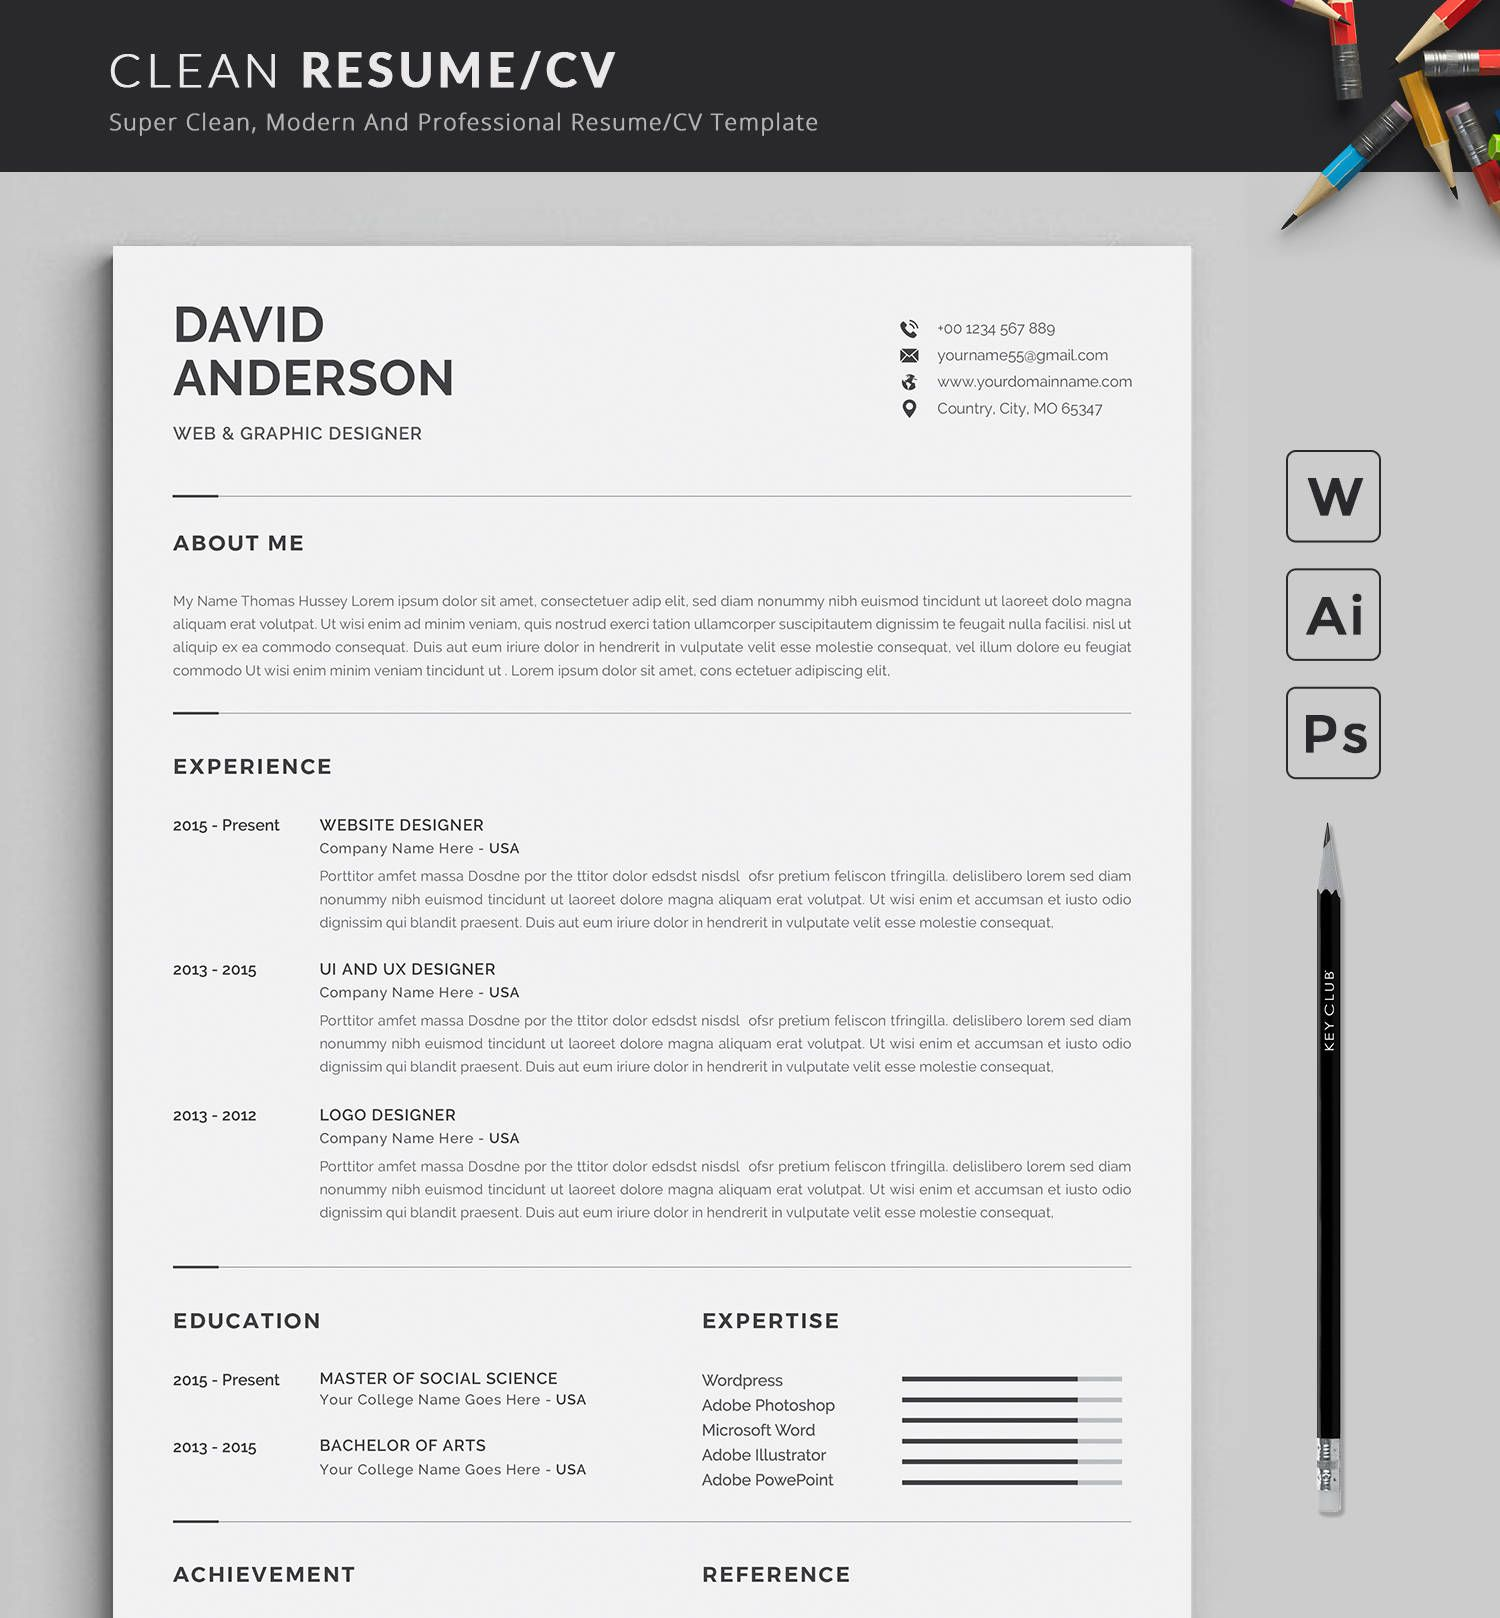 Resume Template Modern & Professional Resume Template